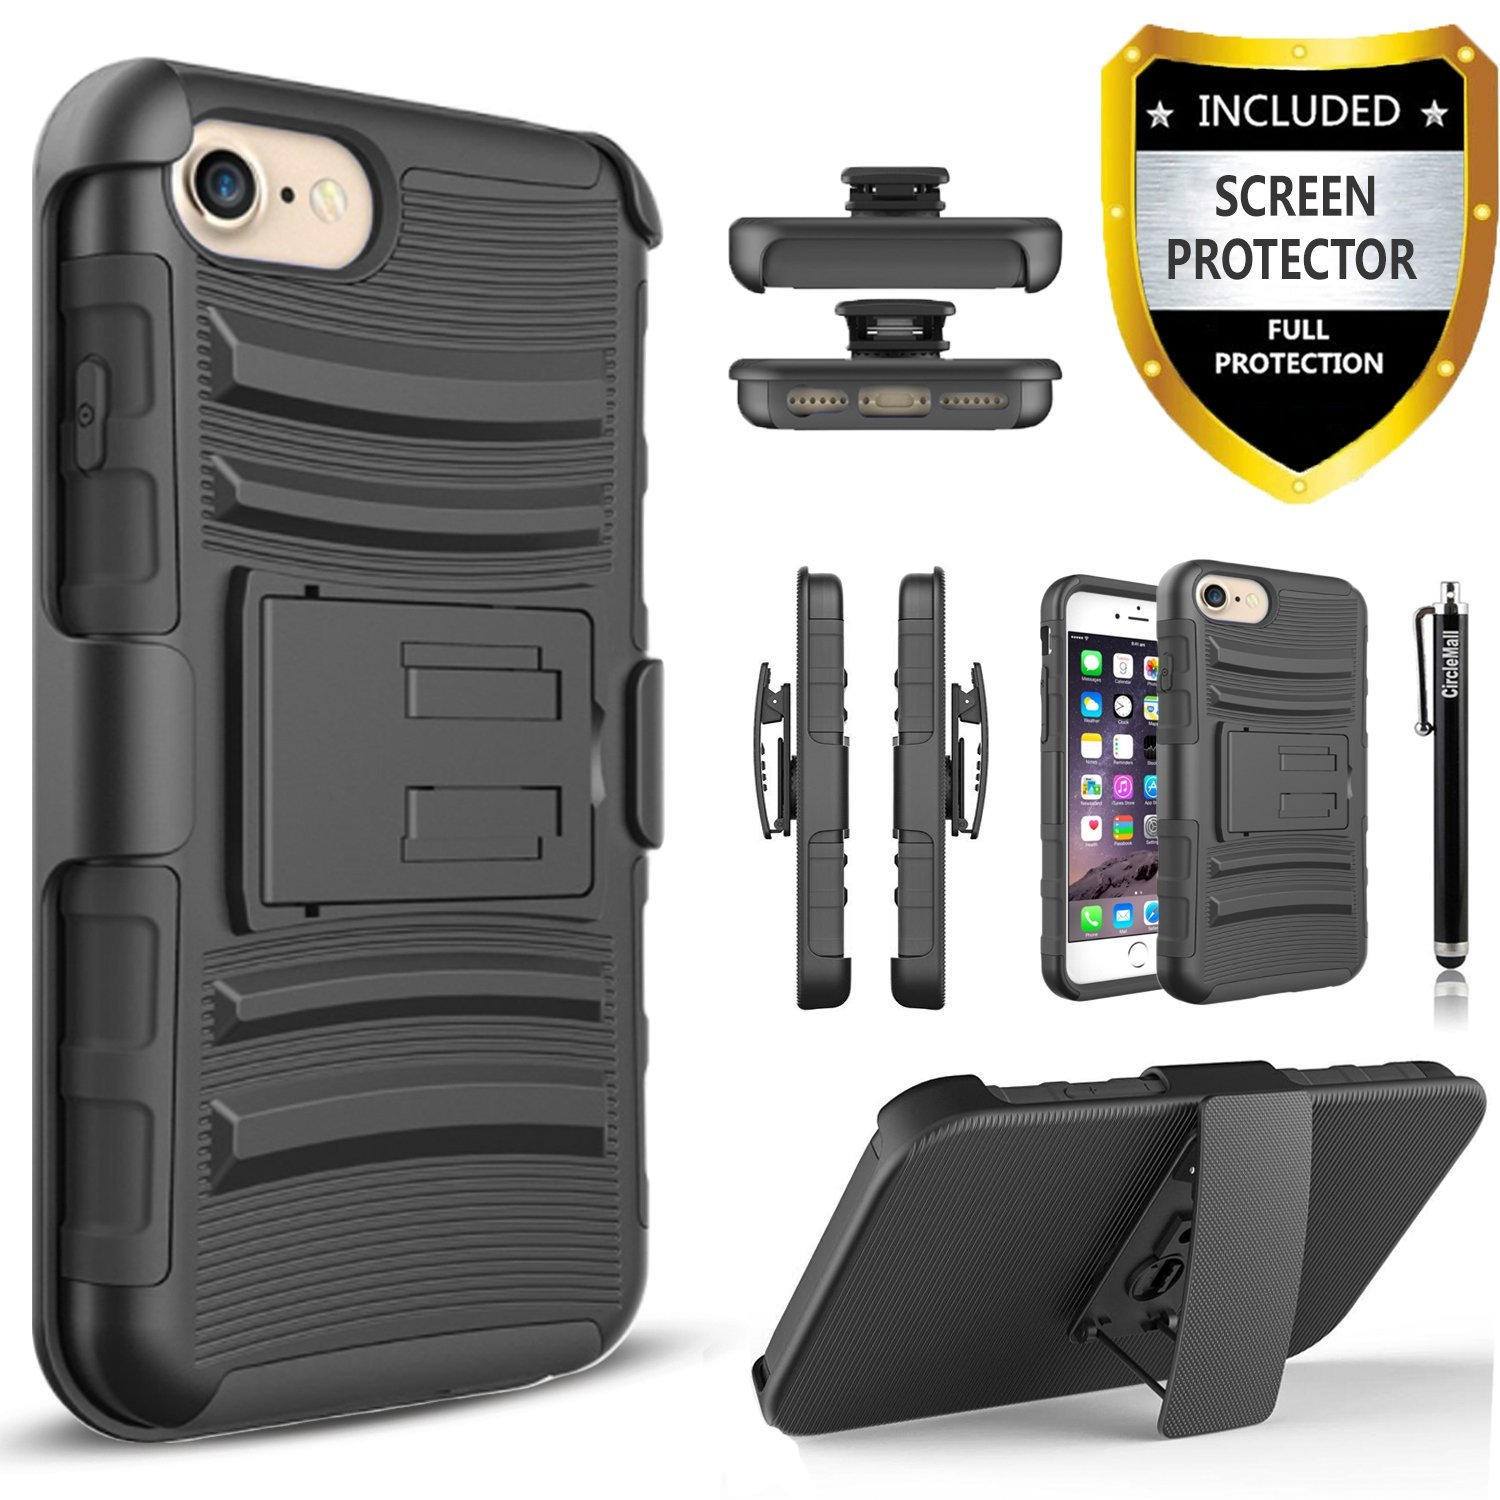 iPhone 8 Plus Case, 2-Piece Style Hybrid Shockproof Hard Case Cover with [Tempered Glass Screen Protector] Hybird Shockproof And Circlemalls Stylus Pen For Apple iPhone 8 Plus (Black)